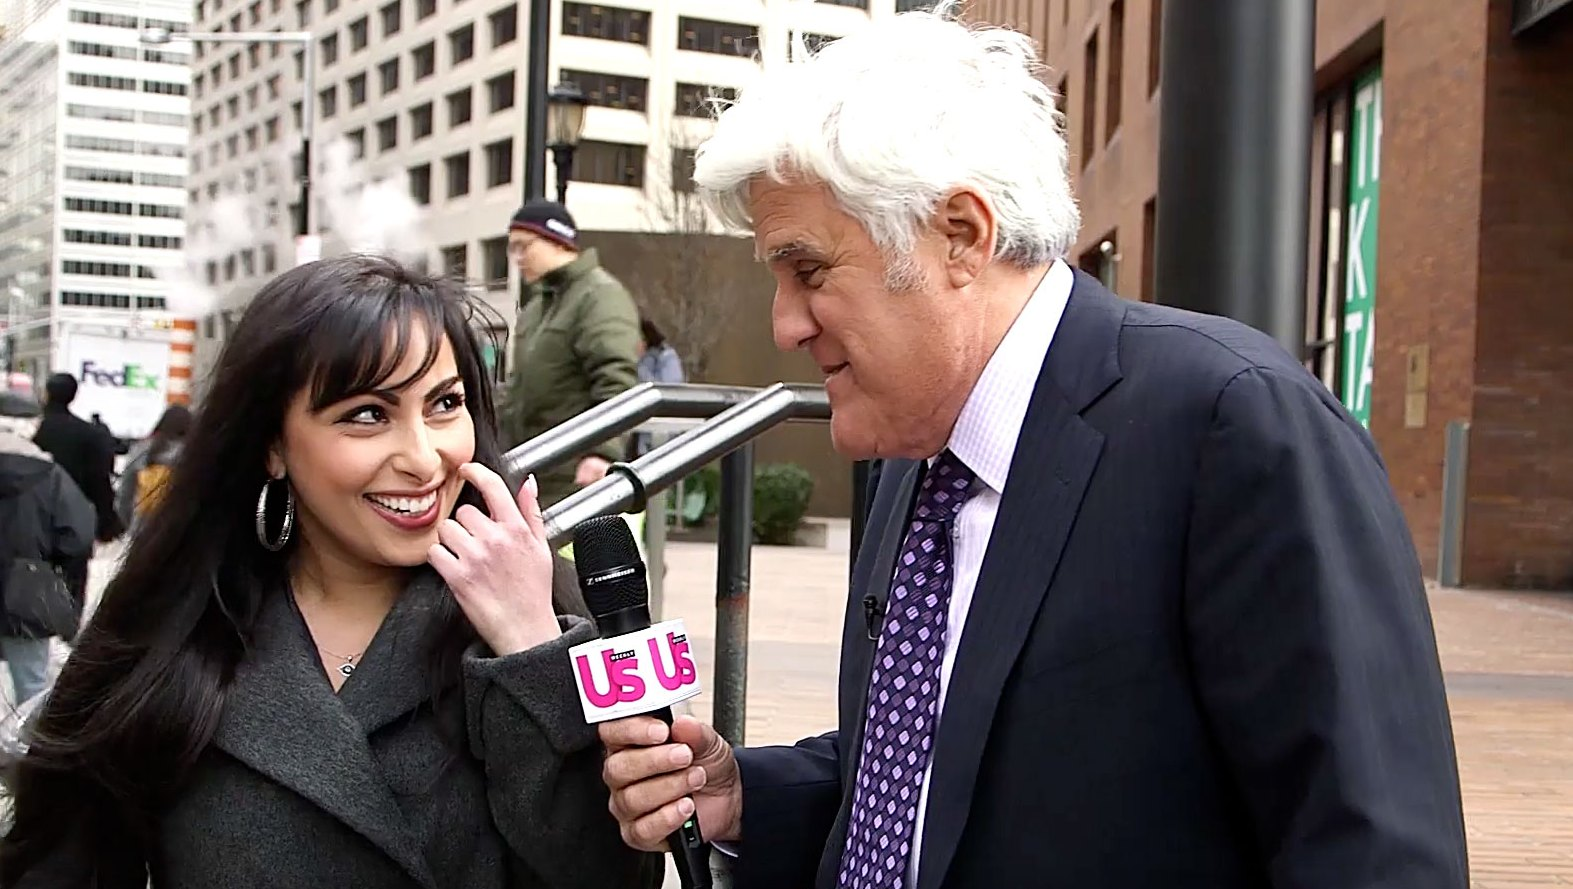 Jay Leno Stumps New Yorkers During an Us Weekly Version of Celebrities vs Politics 'Jaywalking' Segment: Watch!